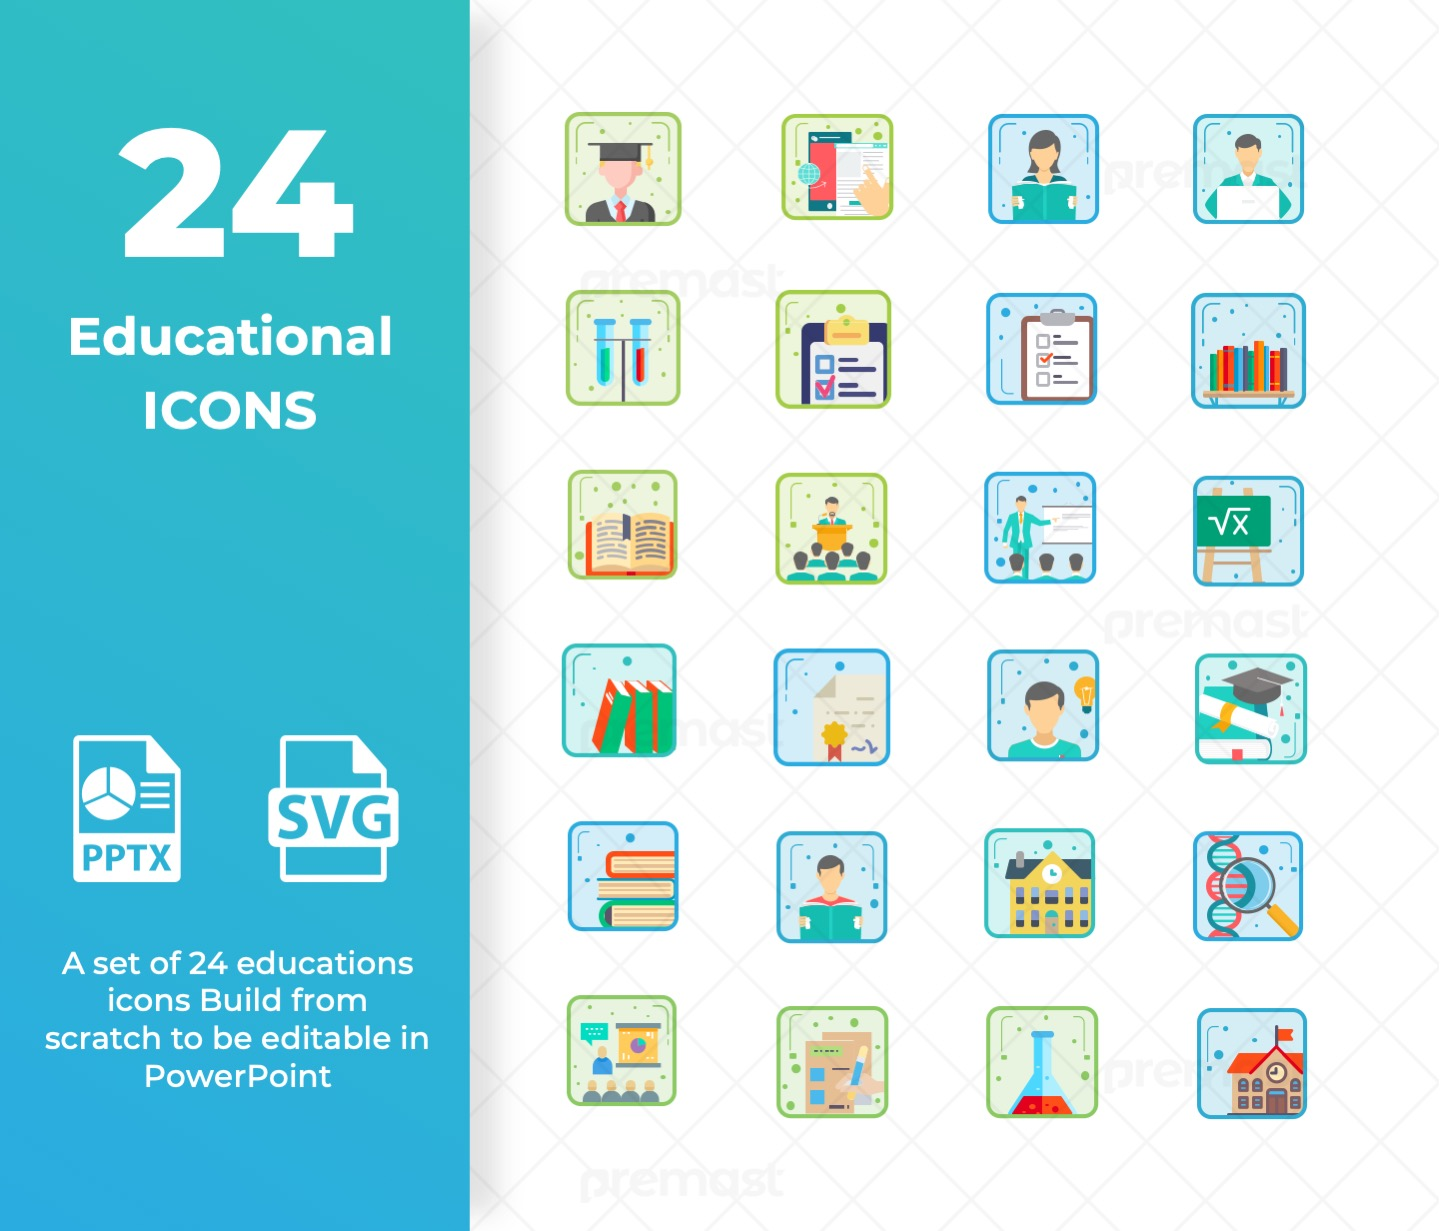 24 Educational Icon set for PowerPoint (SVG - PPT)